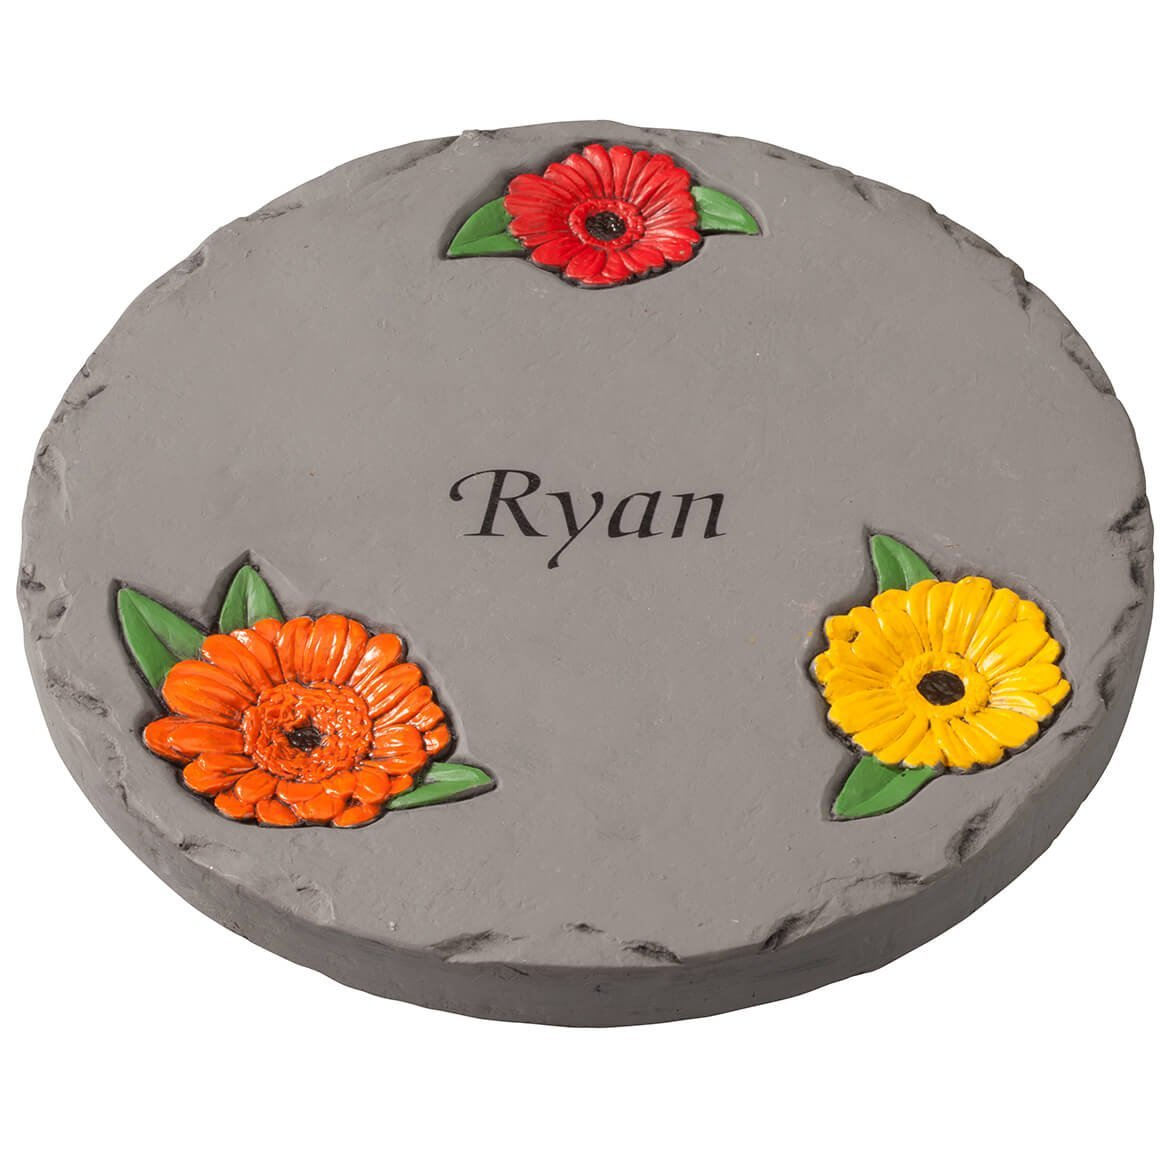 "Fox Valley Traders Personalized 7"" Daisy Garden Stepping Stone – Decorative, Colorful, Durable, Stepping Stone Ideal for Yard, Walkway or Garden – Weather-Resistant Cement"